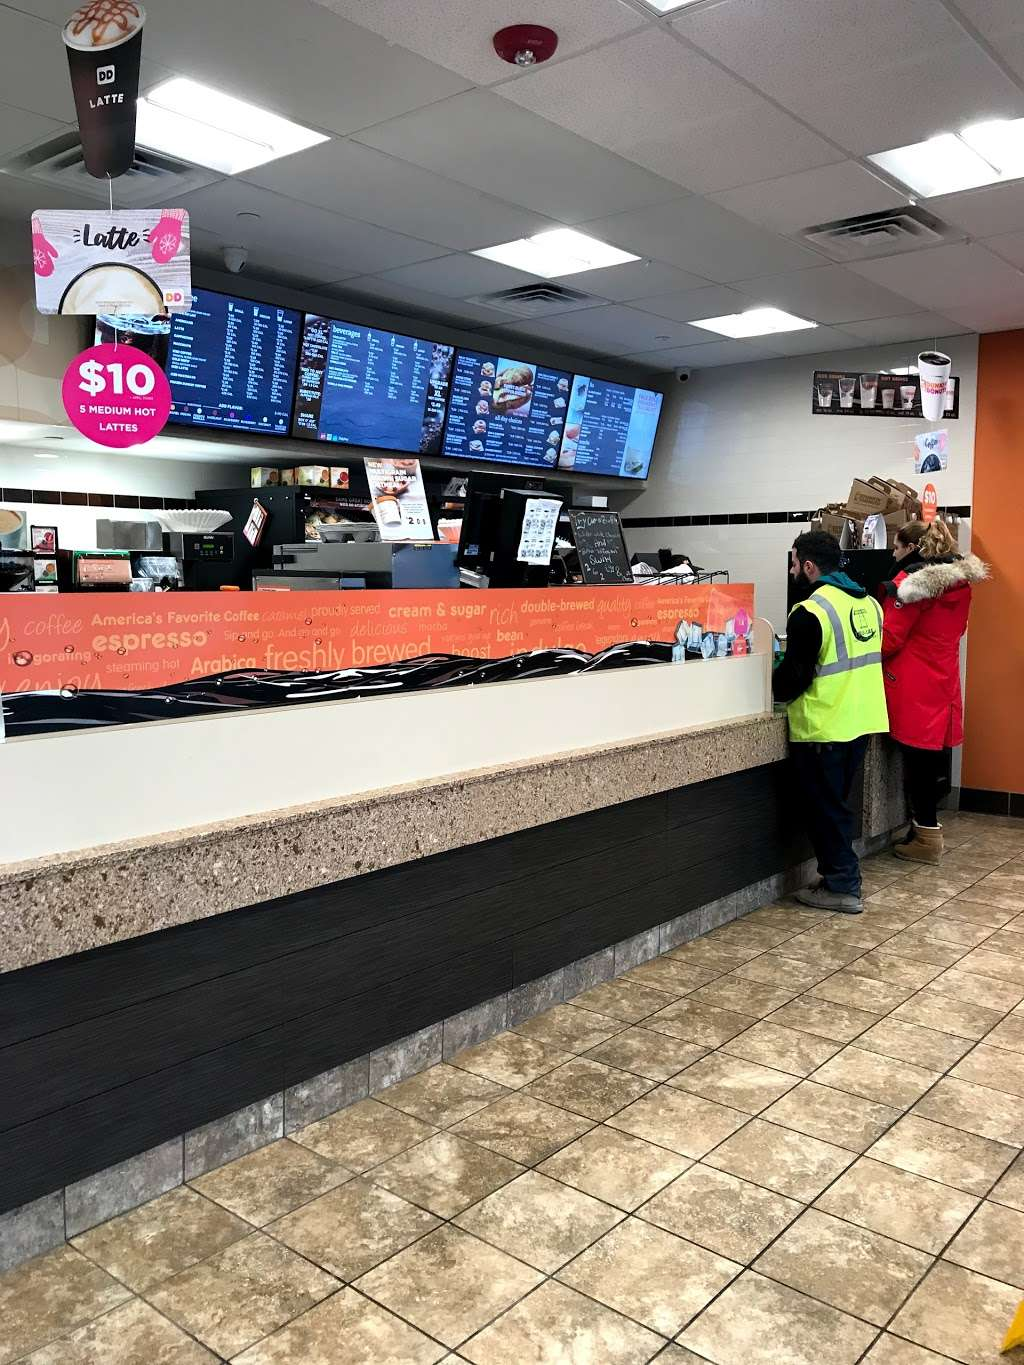 Dunkin Donuts - cafe  | Photo 10 of 10 | Address: 500 Ave at Port Imperial, Weehawken, NJ 07086, USA | Phone: (201) 766-1432